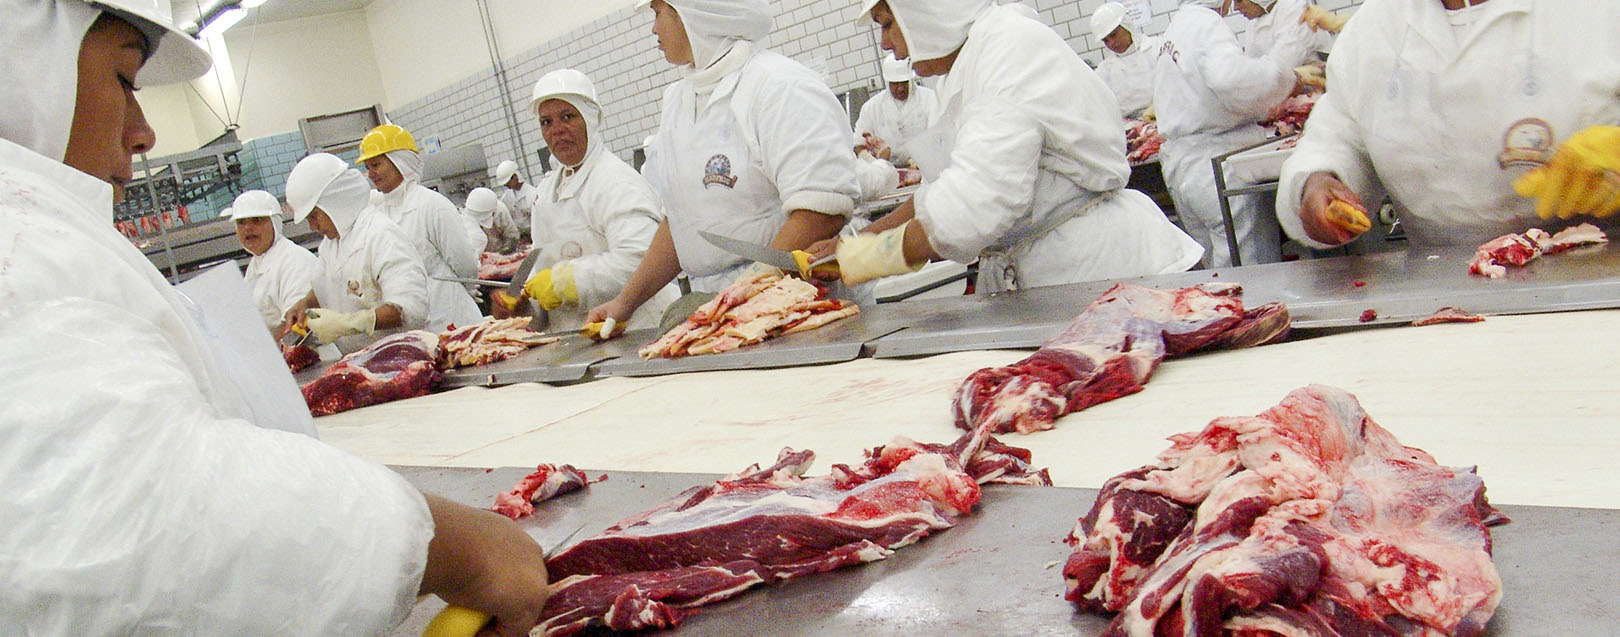 Brazil's meat exports hit by restrictions from 4 major meat importers